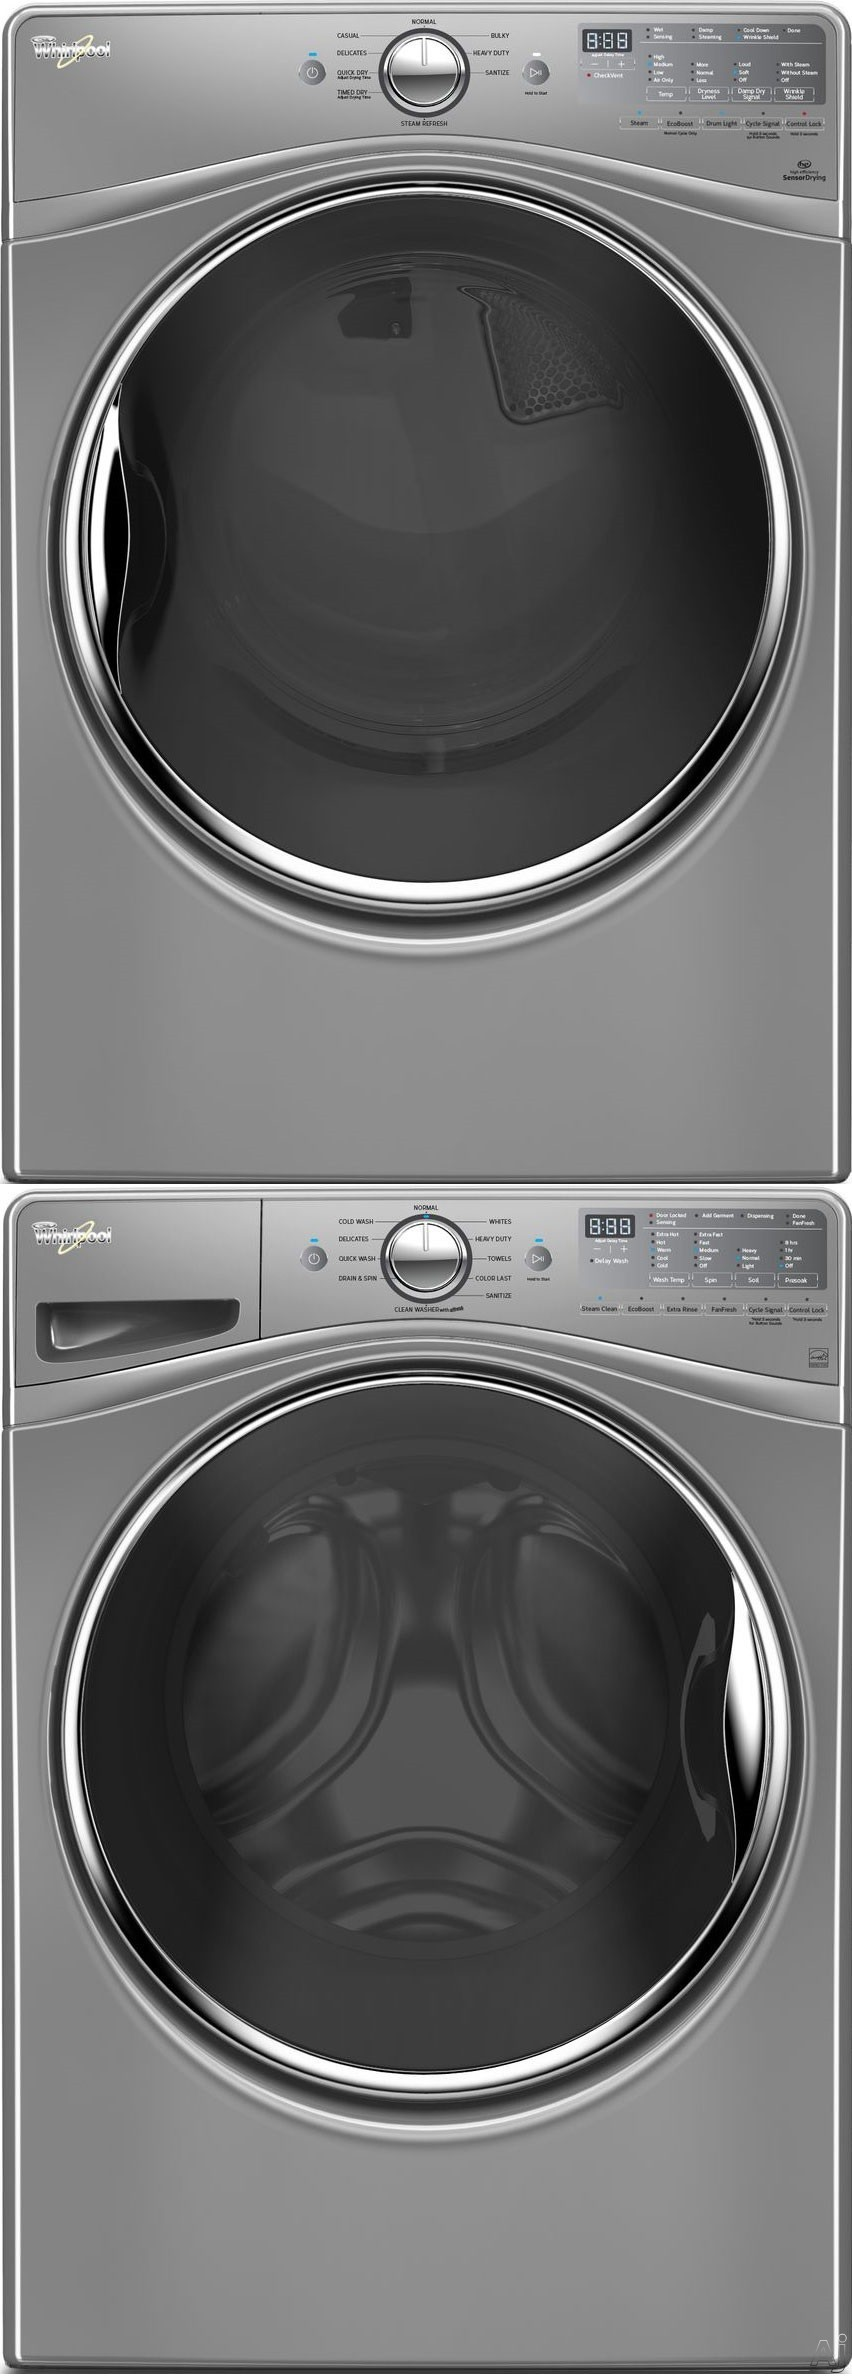 might you ft inch whirlpool cu like bin washer pedestal also ajmadison ventless compact cgi front dryer load duet